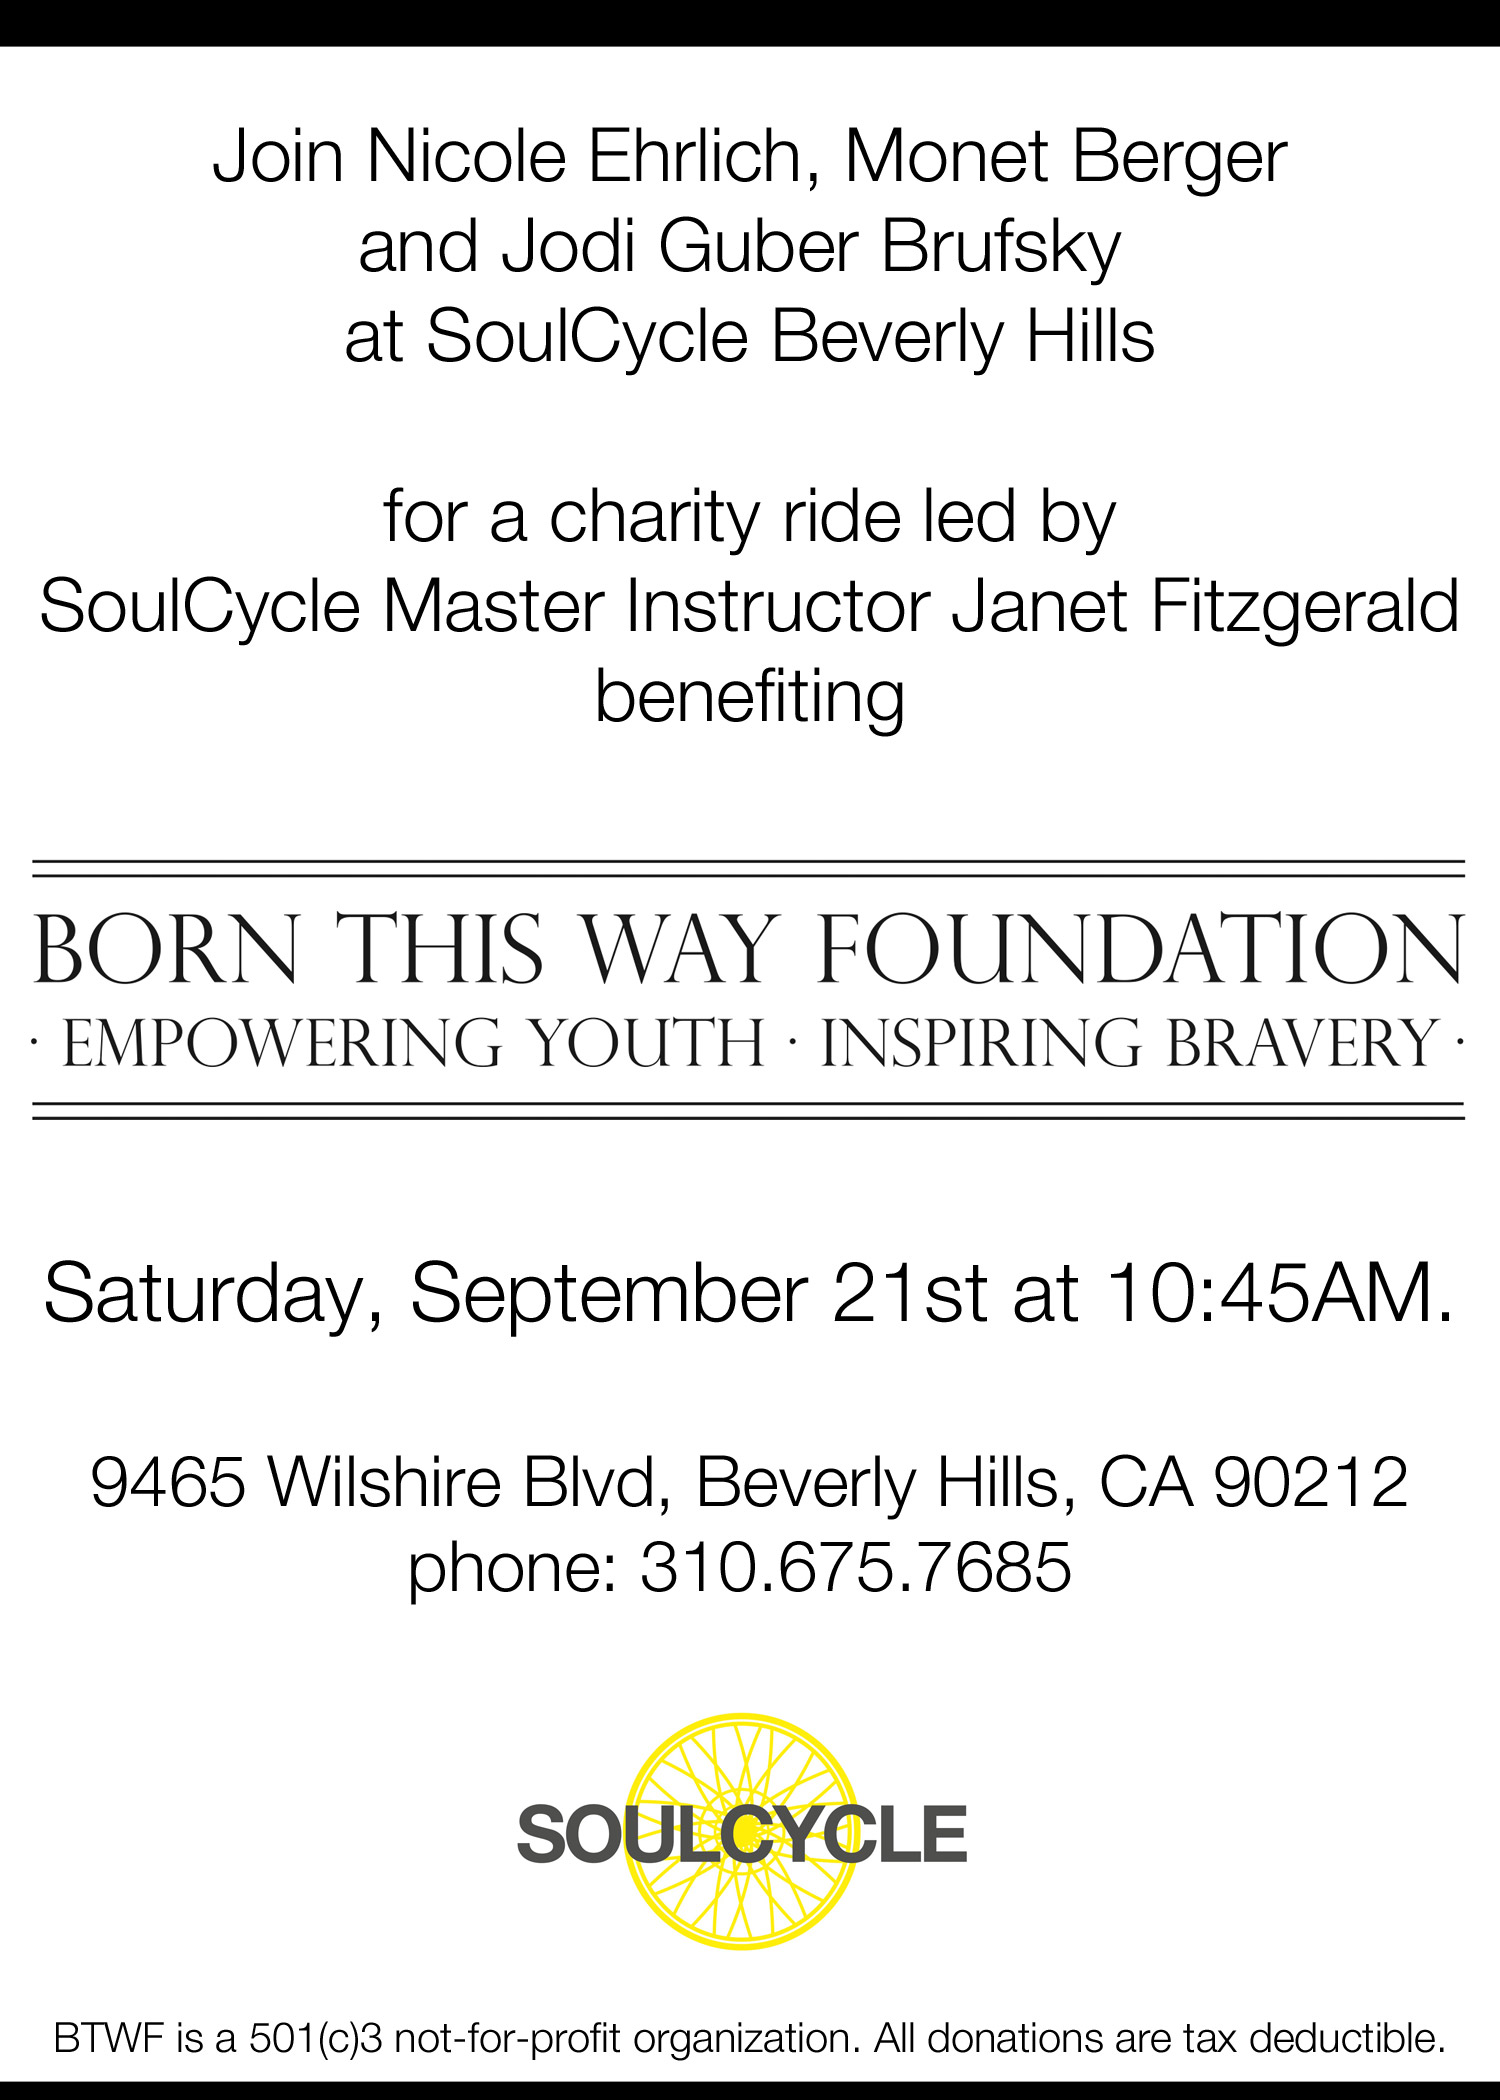 Join Nicole Ehrlich, Monet Berger and Jodi Guber Brufsky  at SoulCycle Beverly Hills for a charity ride led by SoulCycle Master Instructor Janet Fitzgerald benefiting Born This Way Foundation Saturday, September 21st at 10:45AM. 9465 Wilshire Blvd, Beverly Hills, CA 90212 phone: 310.675.7685